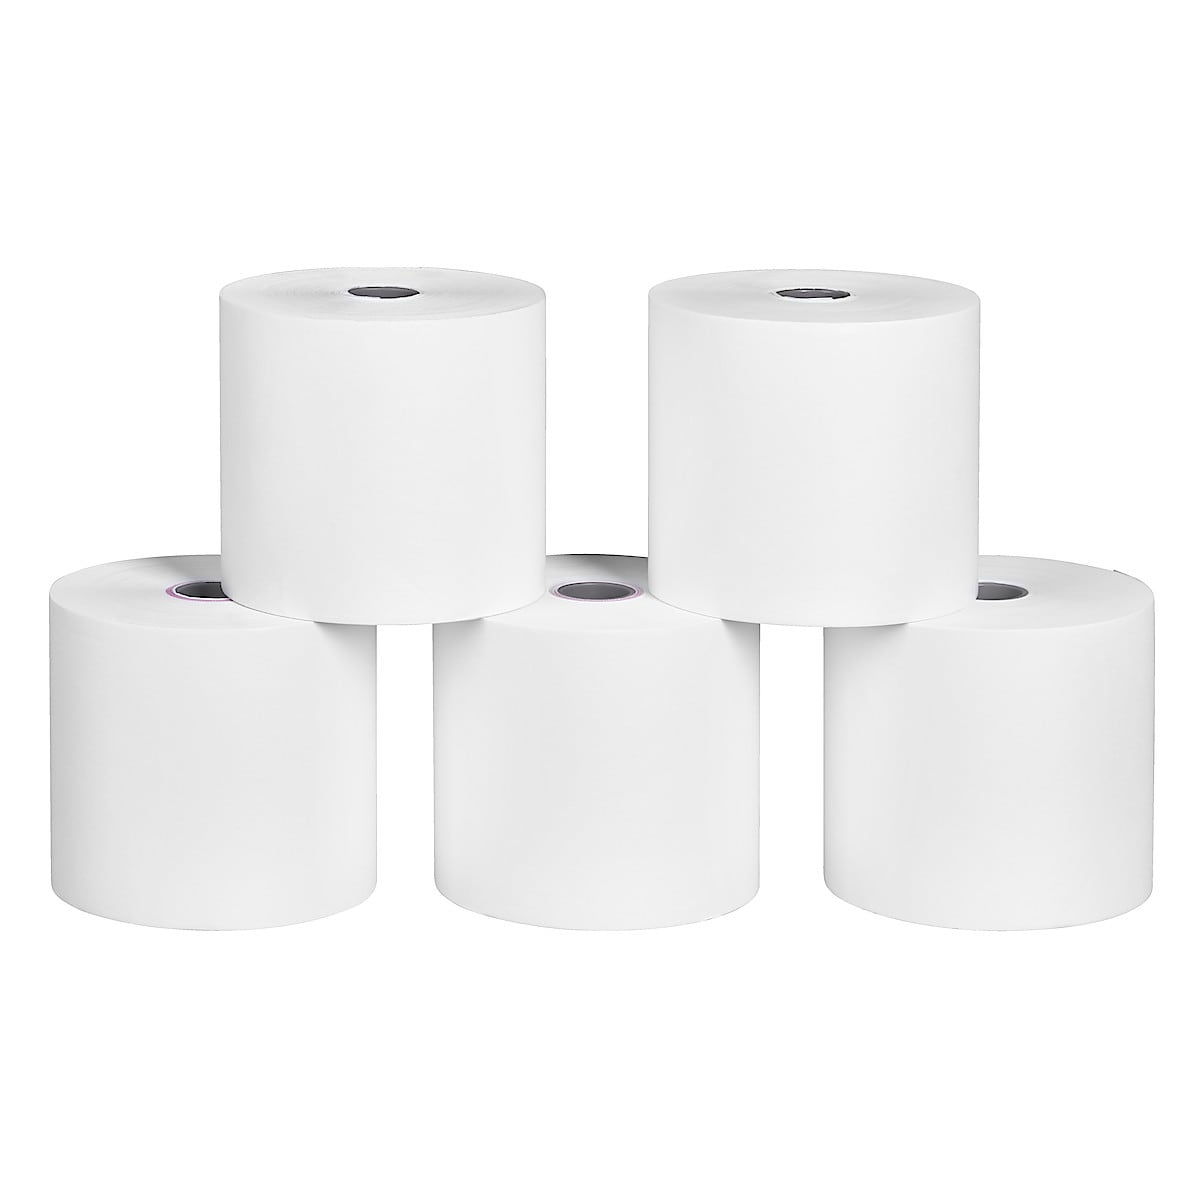 Adding Machine Rolls 57 mm x 32 m, 5-pack